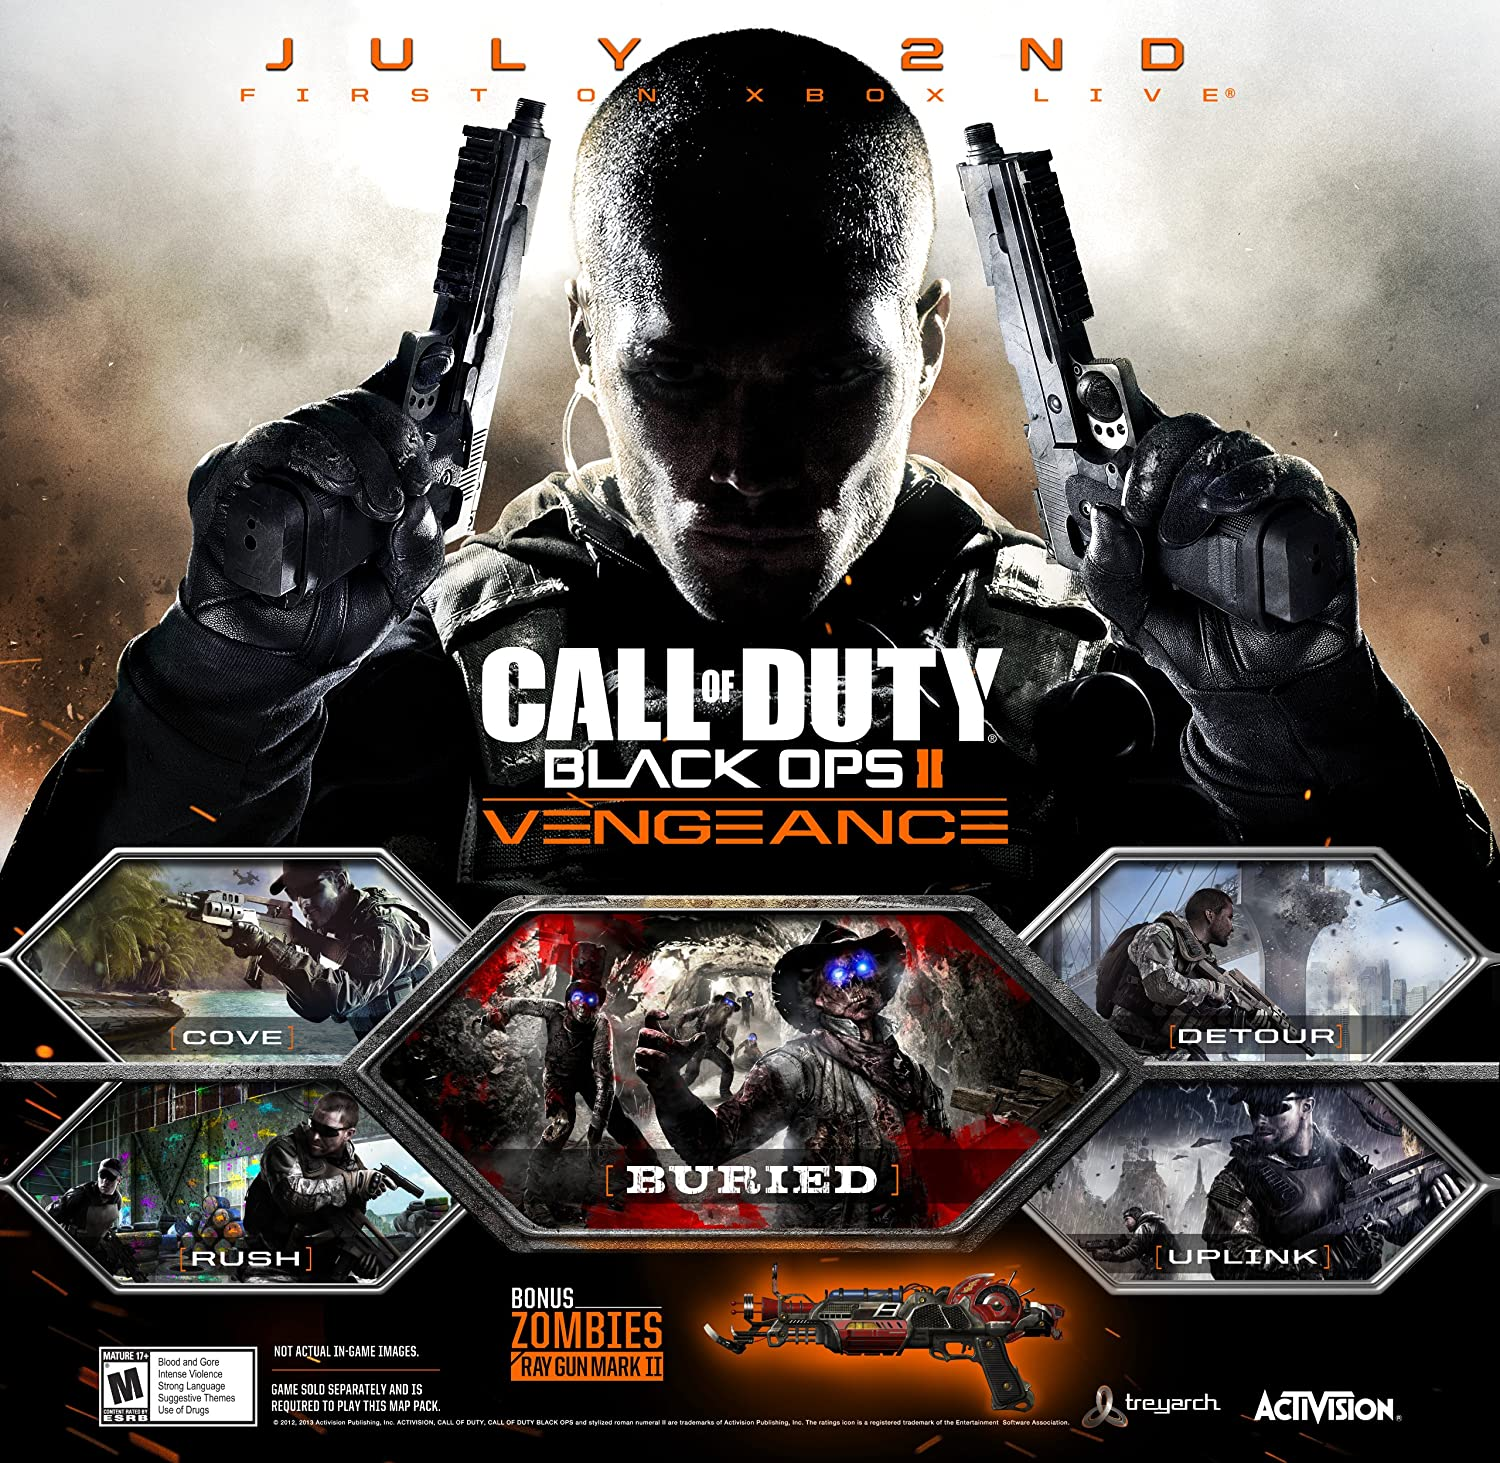 Amazon com: Call of Duty: Black Ops II Vengeance [Online Game Code